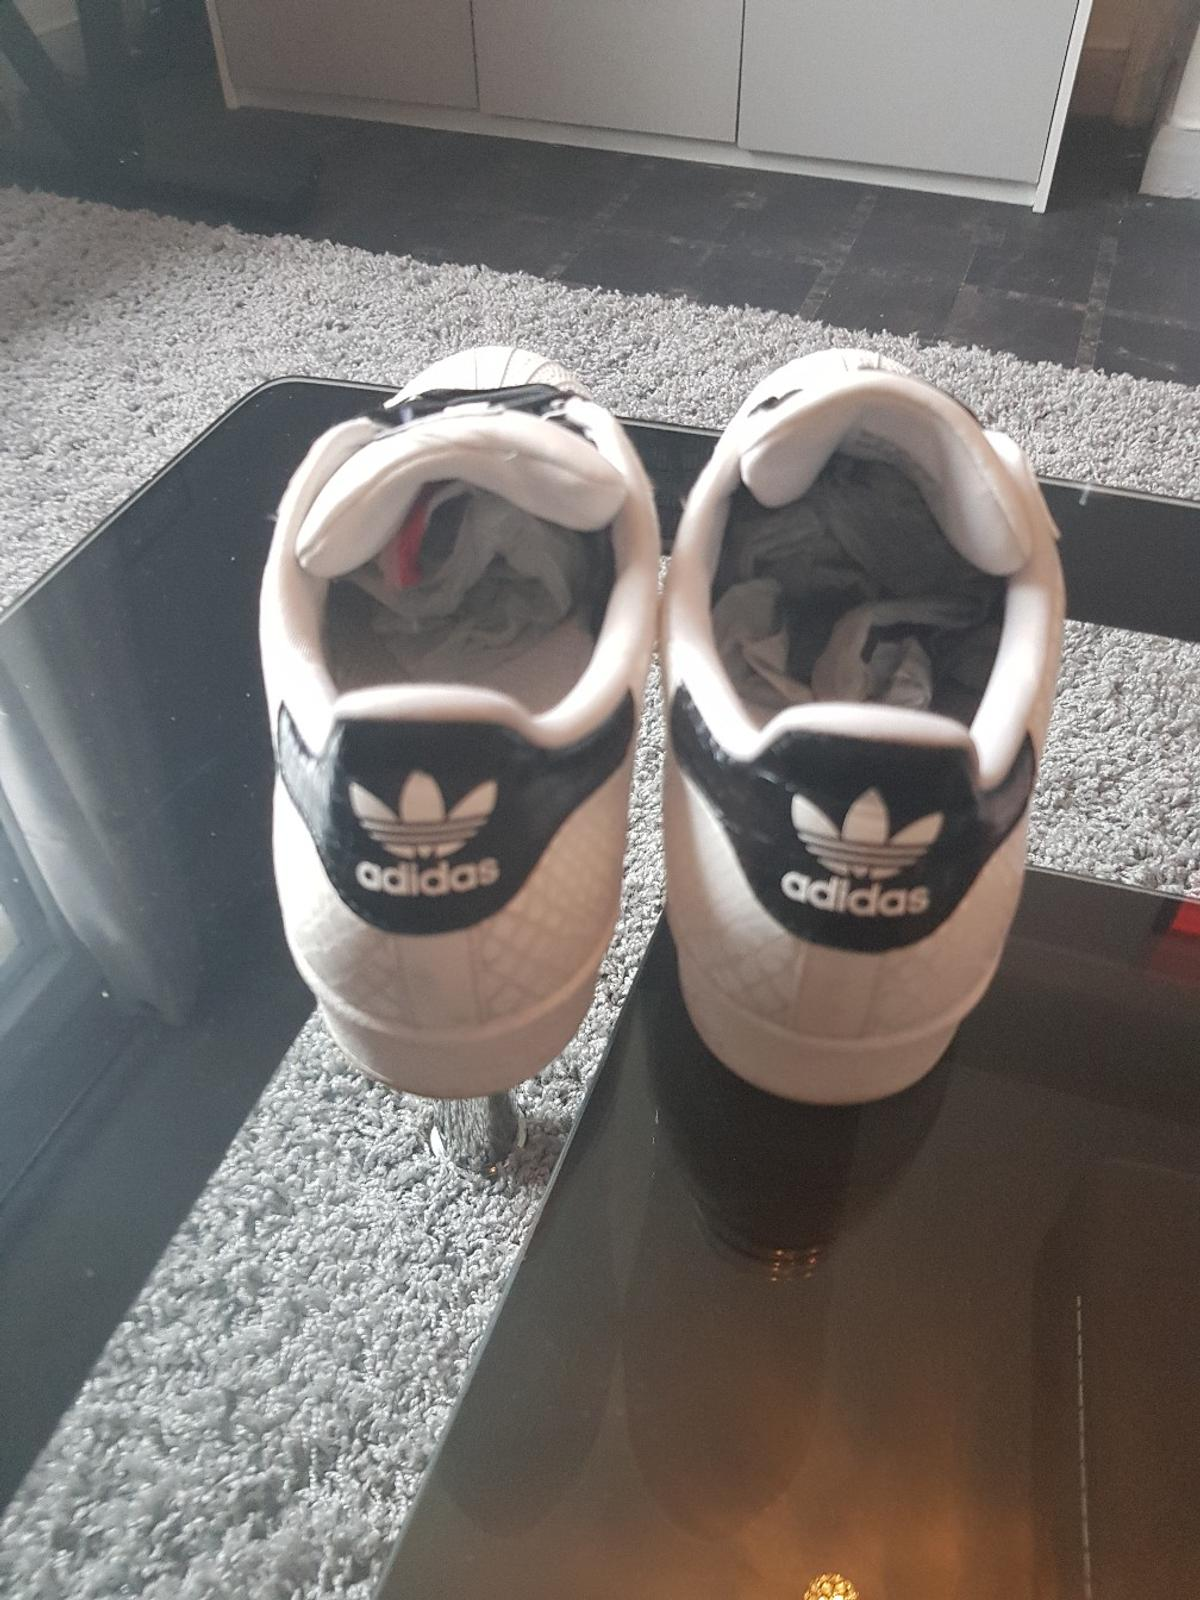 Adidas Superstar Black And White In W3 Ealing For 20 00 For Sale Shpock